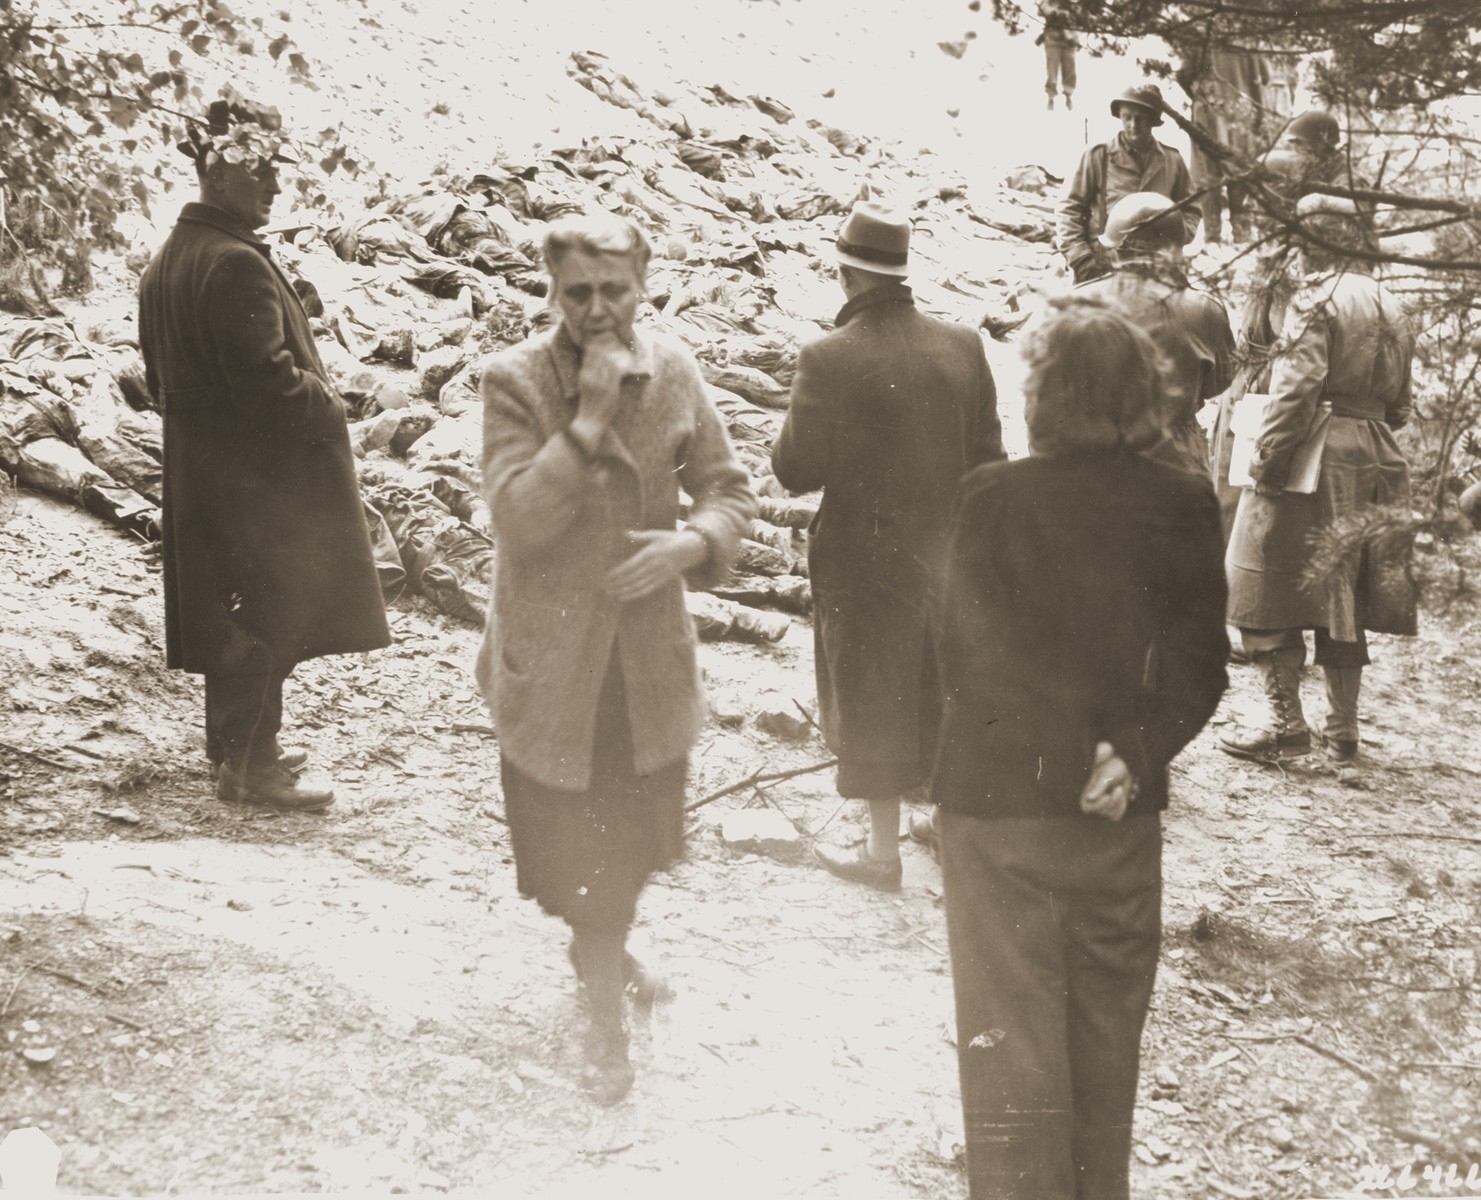 Under the supervision of American soldiers, German civilians look at the bodies of 71 political prisoners exhumed from a mass grave on Wenzelnberg near Solingen-Ohligs.    The victims, most of whom were taken from Luettringhausen prison, were shot and buried by the Gestapo following orders to eliminate all Reich enemies just before the end of the war.